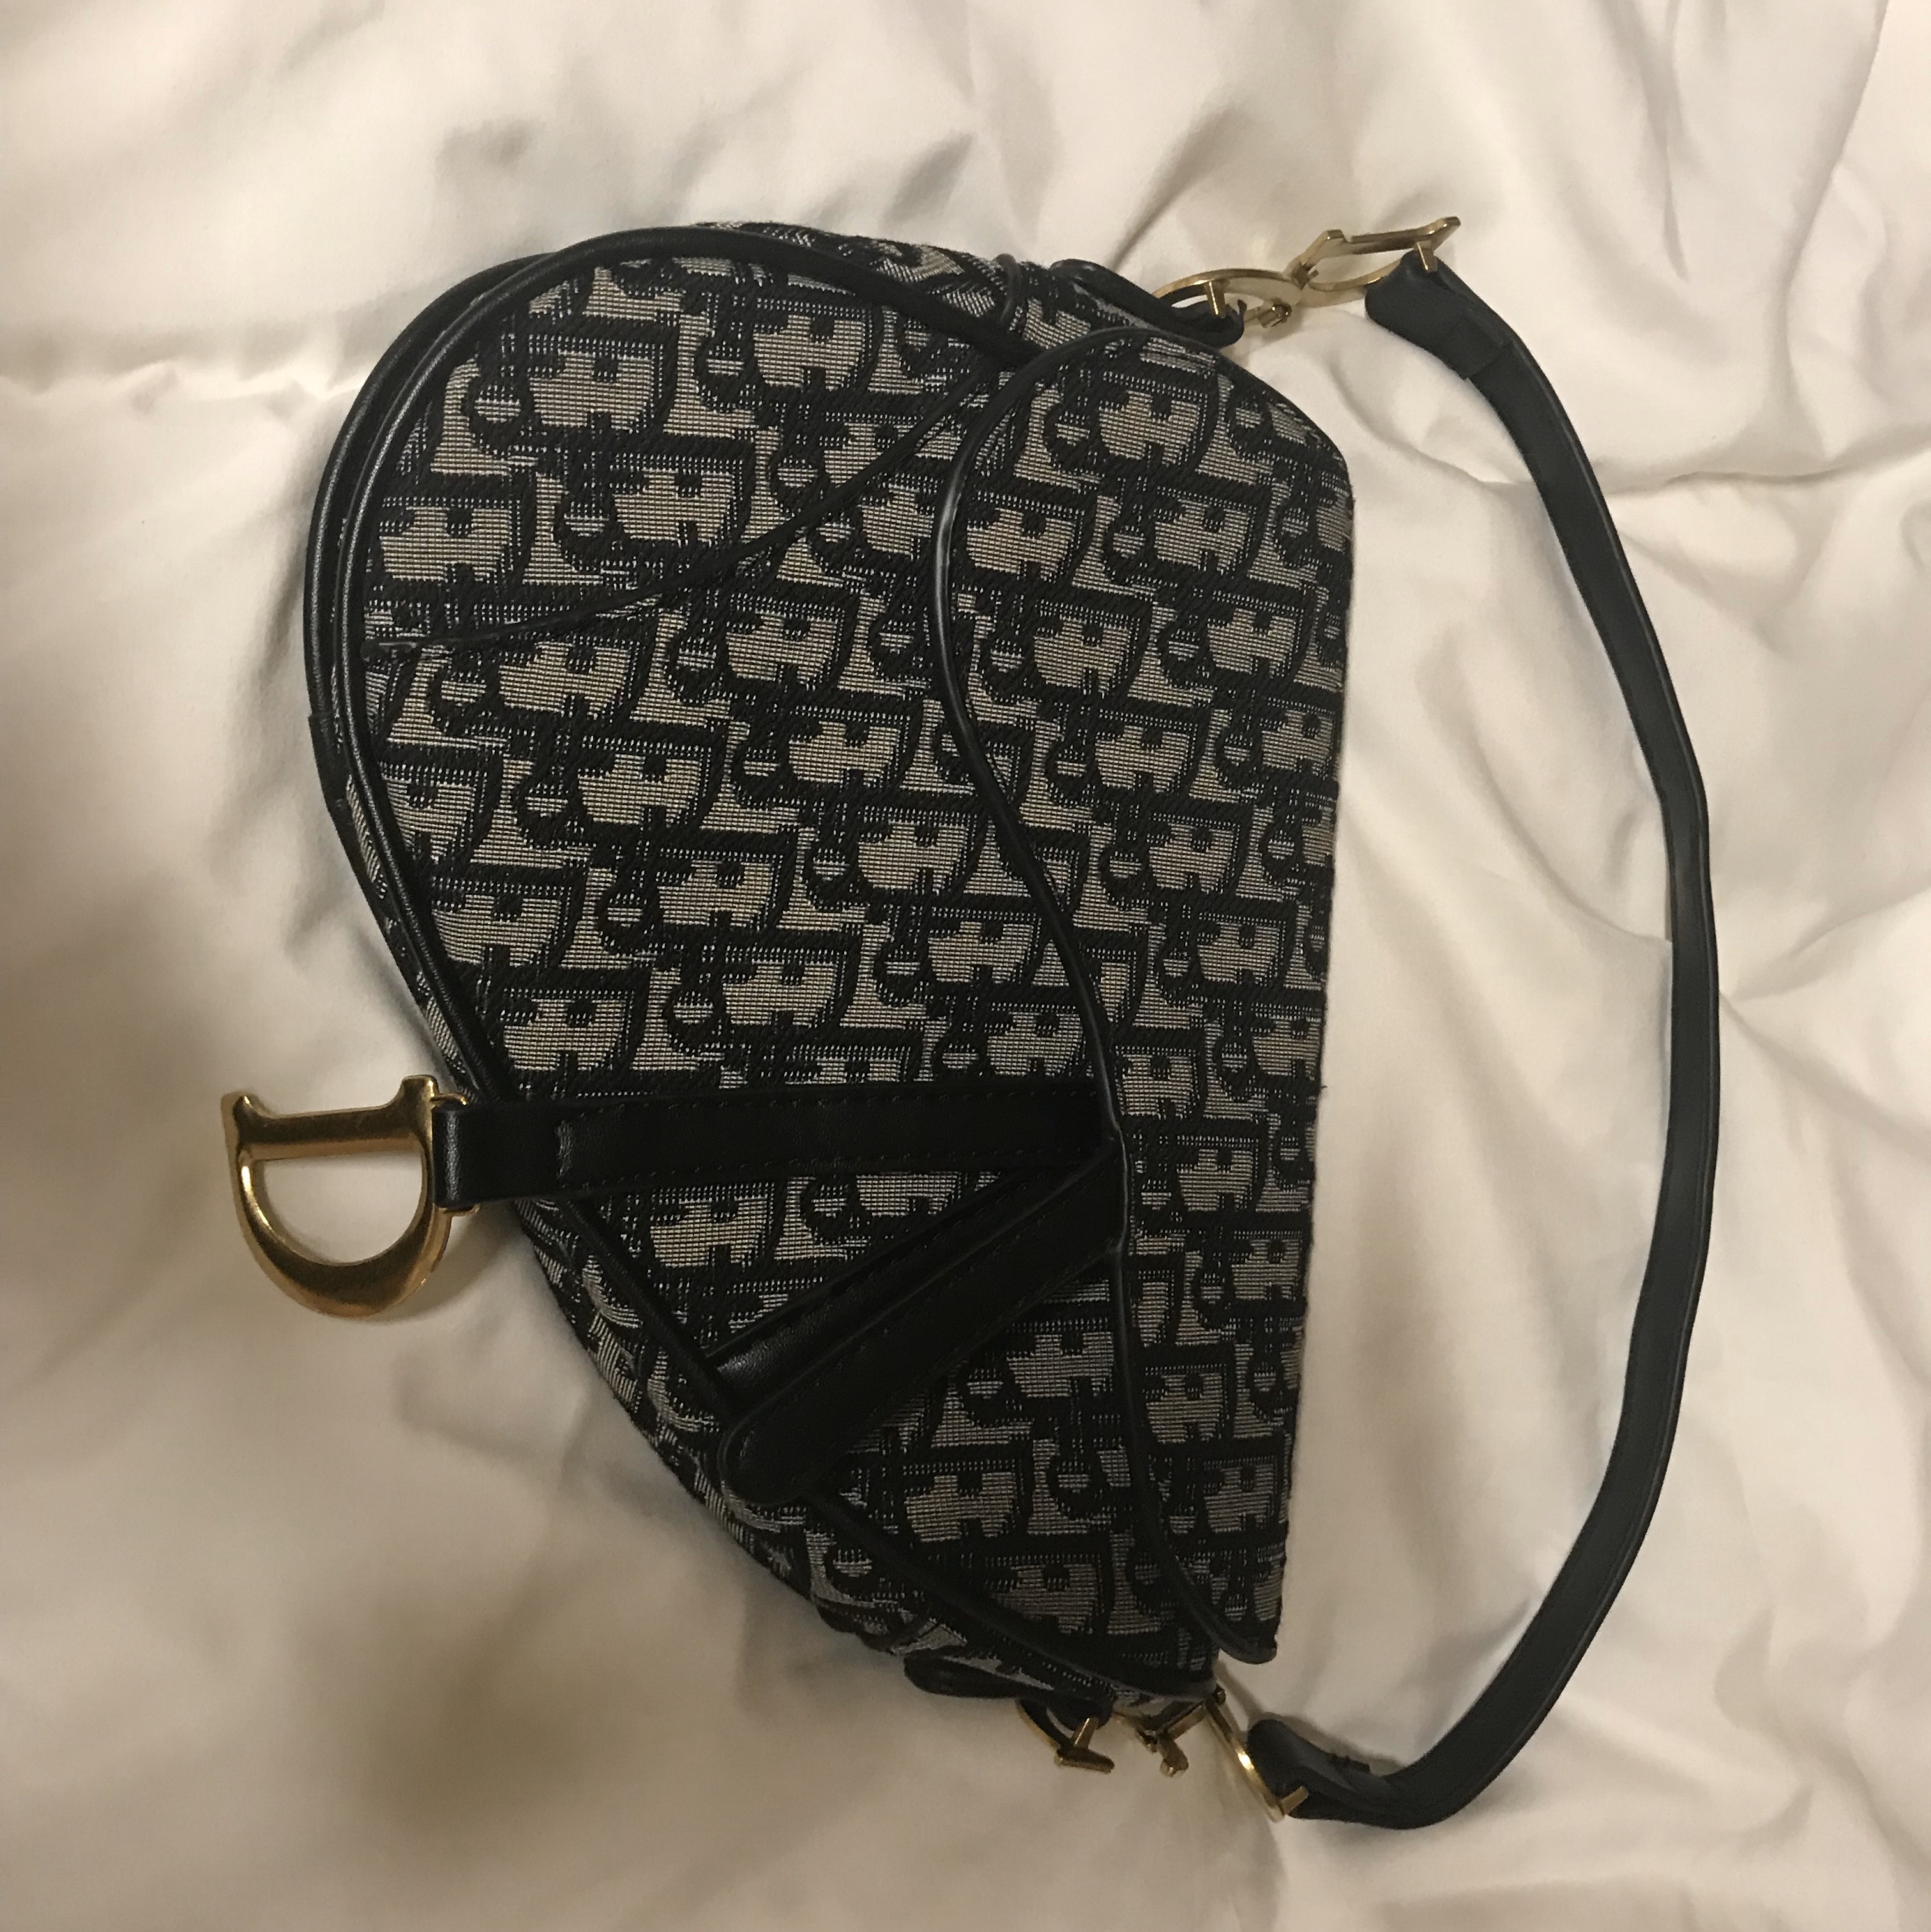 Dior Oblique Saddle Bag by Depop